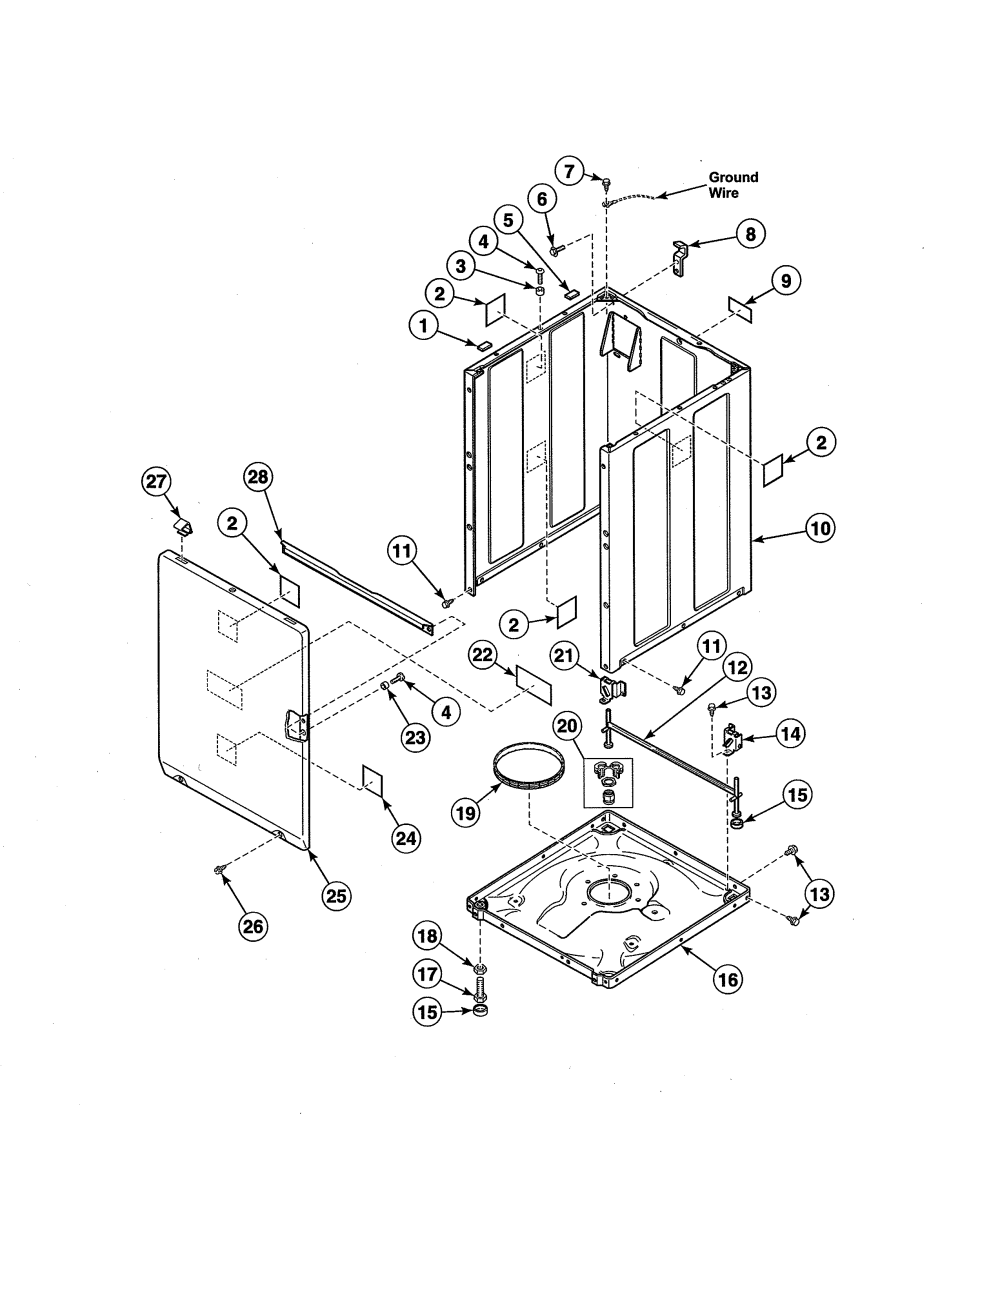 medium resolution of alliance awne82sp113tw01 front panel base cabinet kit diagram